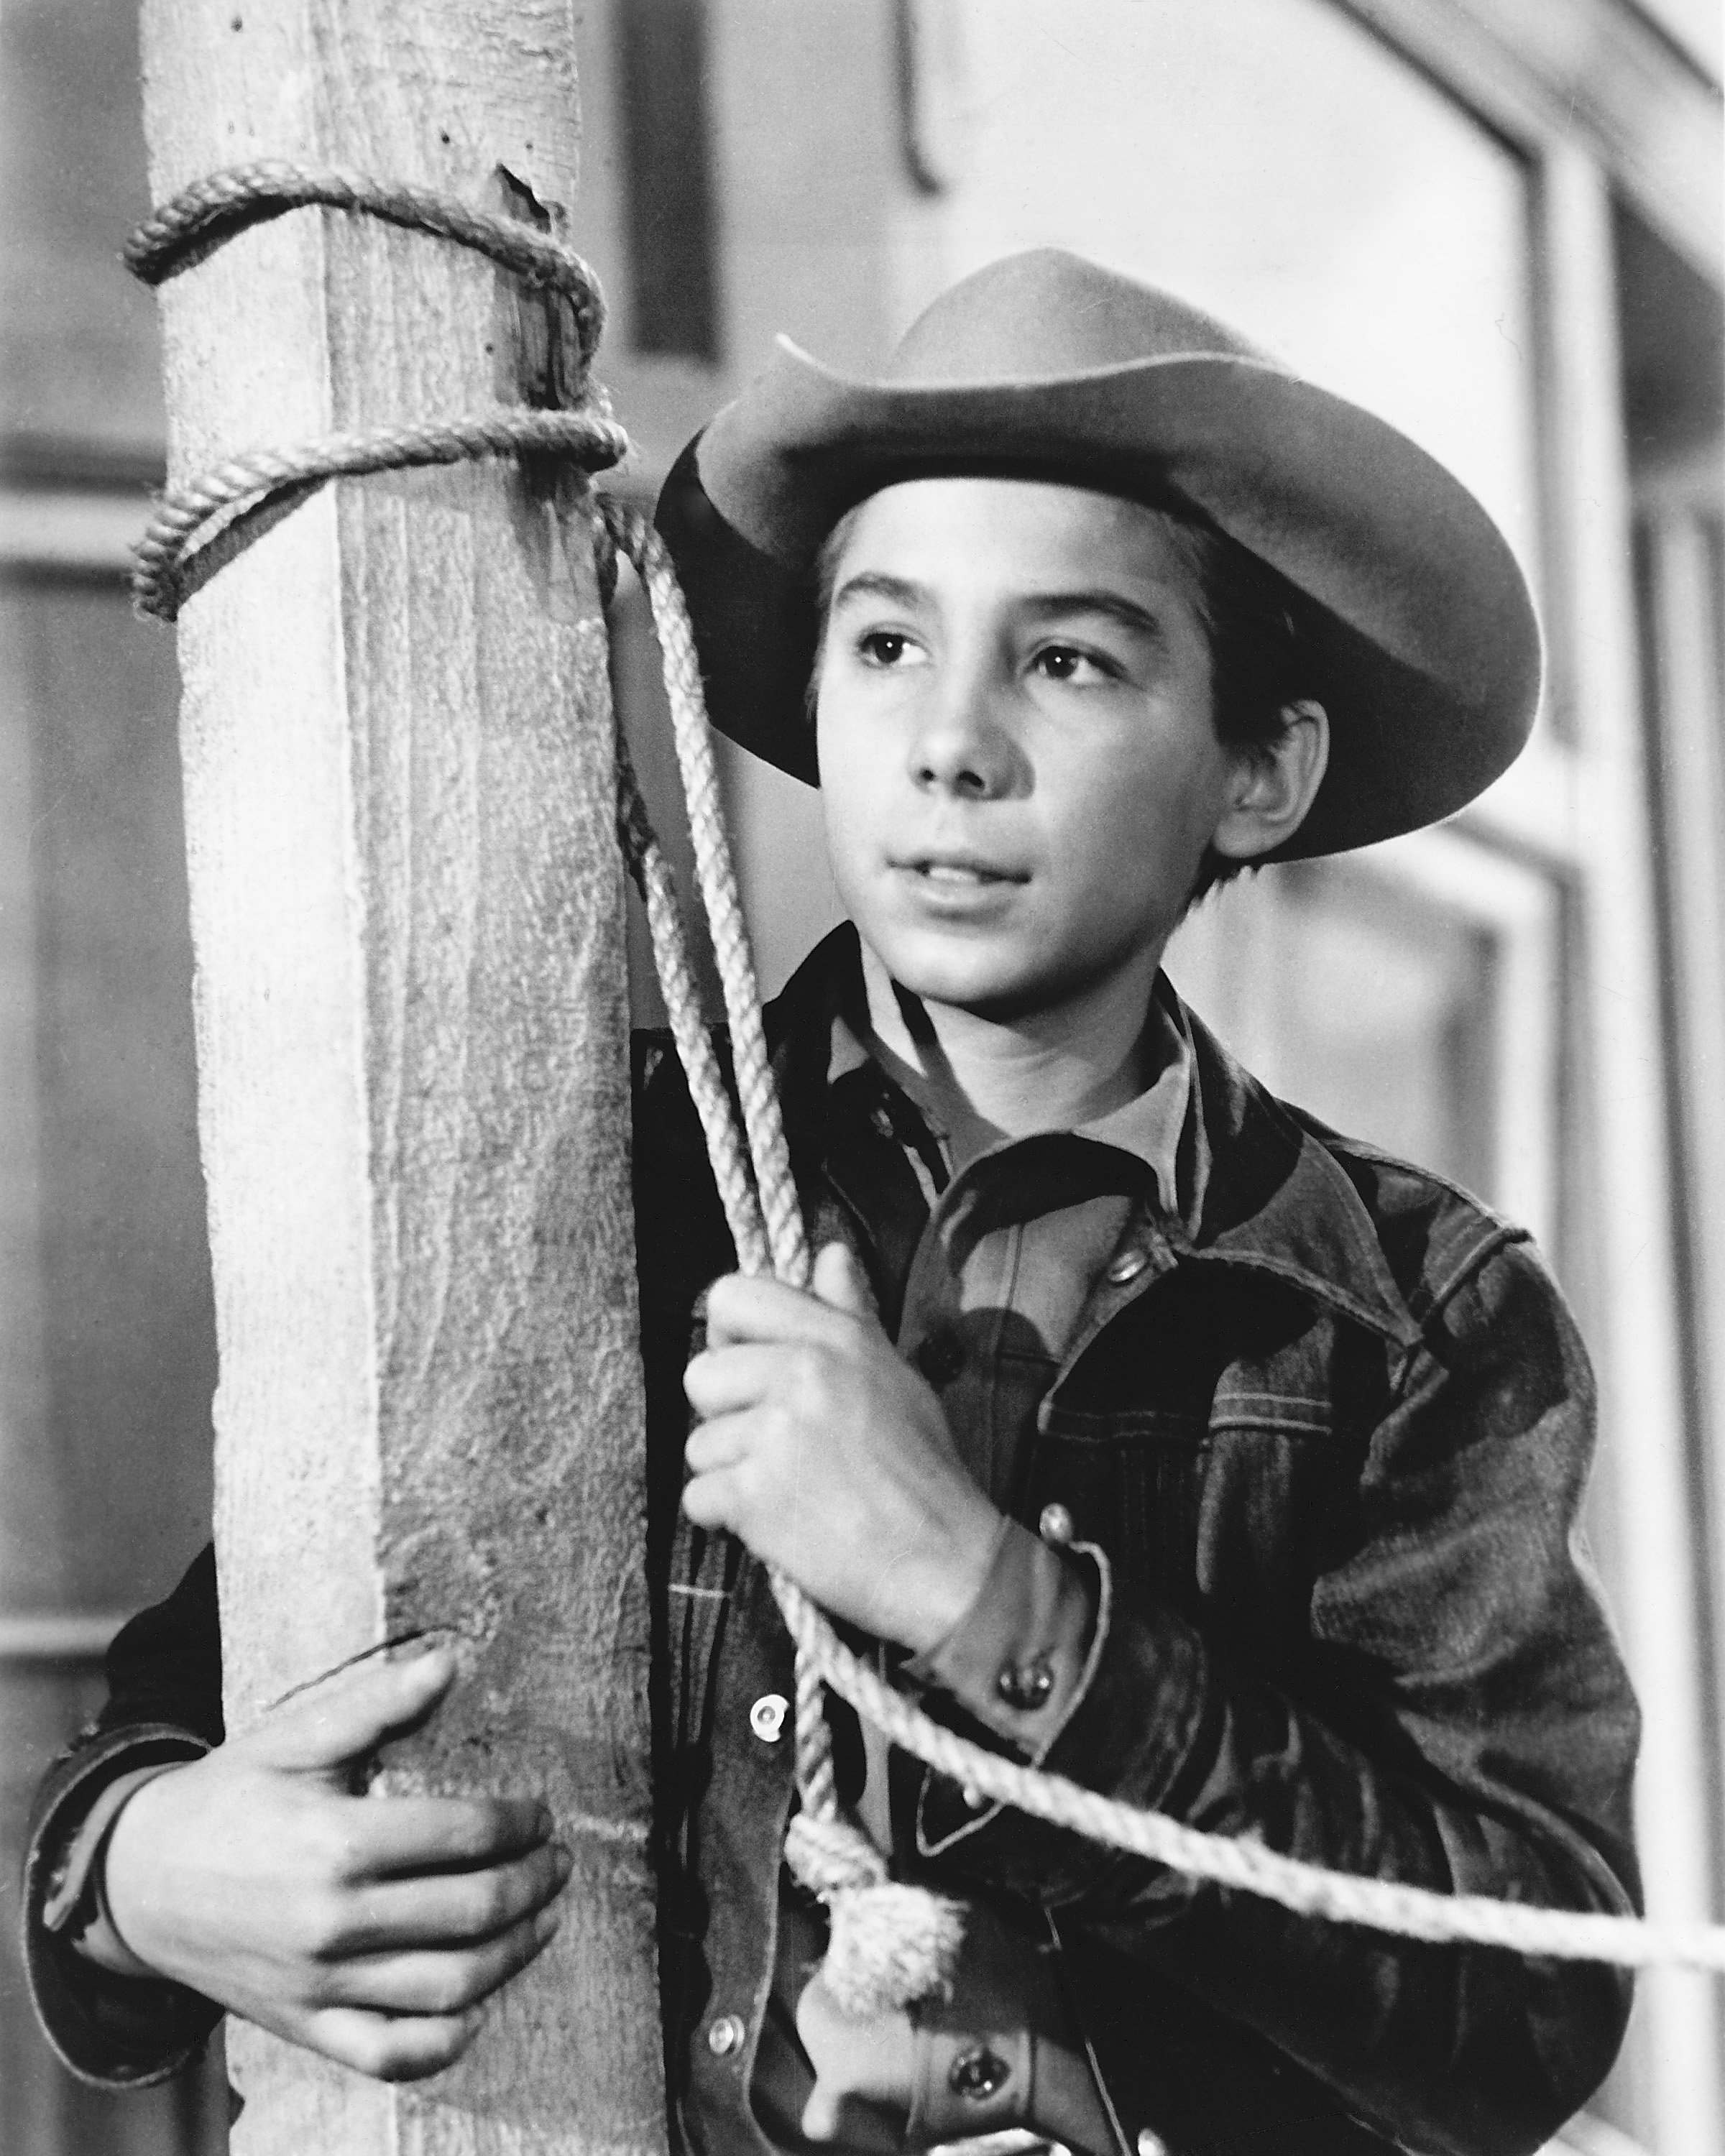 The younger Johnny Crawford as Mark McCain in the US TV western series 'The Rifleman', circa 1960 | Photo: Getty Images